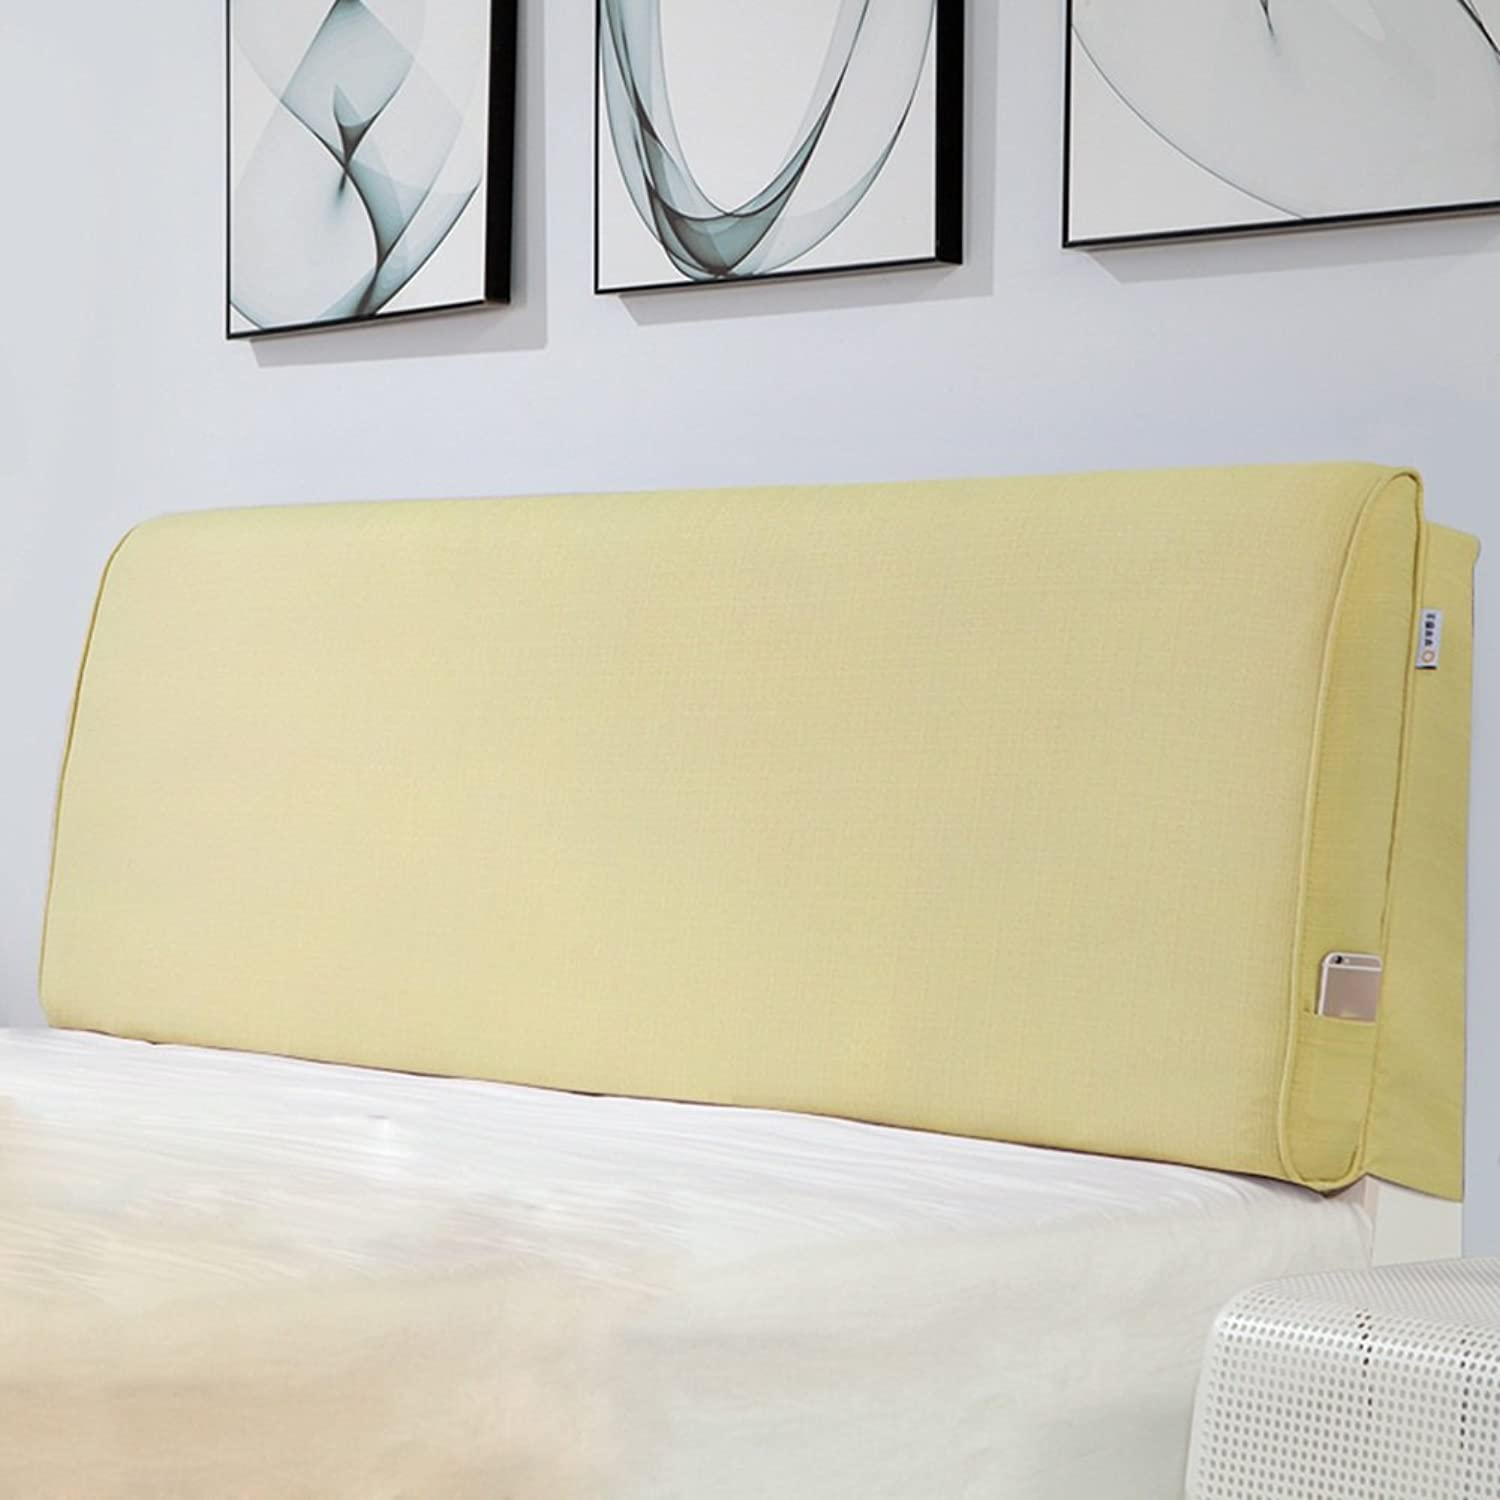 WENZHE Upholstered Fabric Headboard Bedside Cushion Pads Cover Bed Wedges Backrest Waist Pad Double Bed Cloth Art Sofa Pillow Soft Case Bedroom Large Back Washable Home Accessories Bed Cover, There Is Headboard   No Headboard, 6 colors, 4 Sizes Optional (